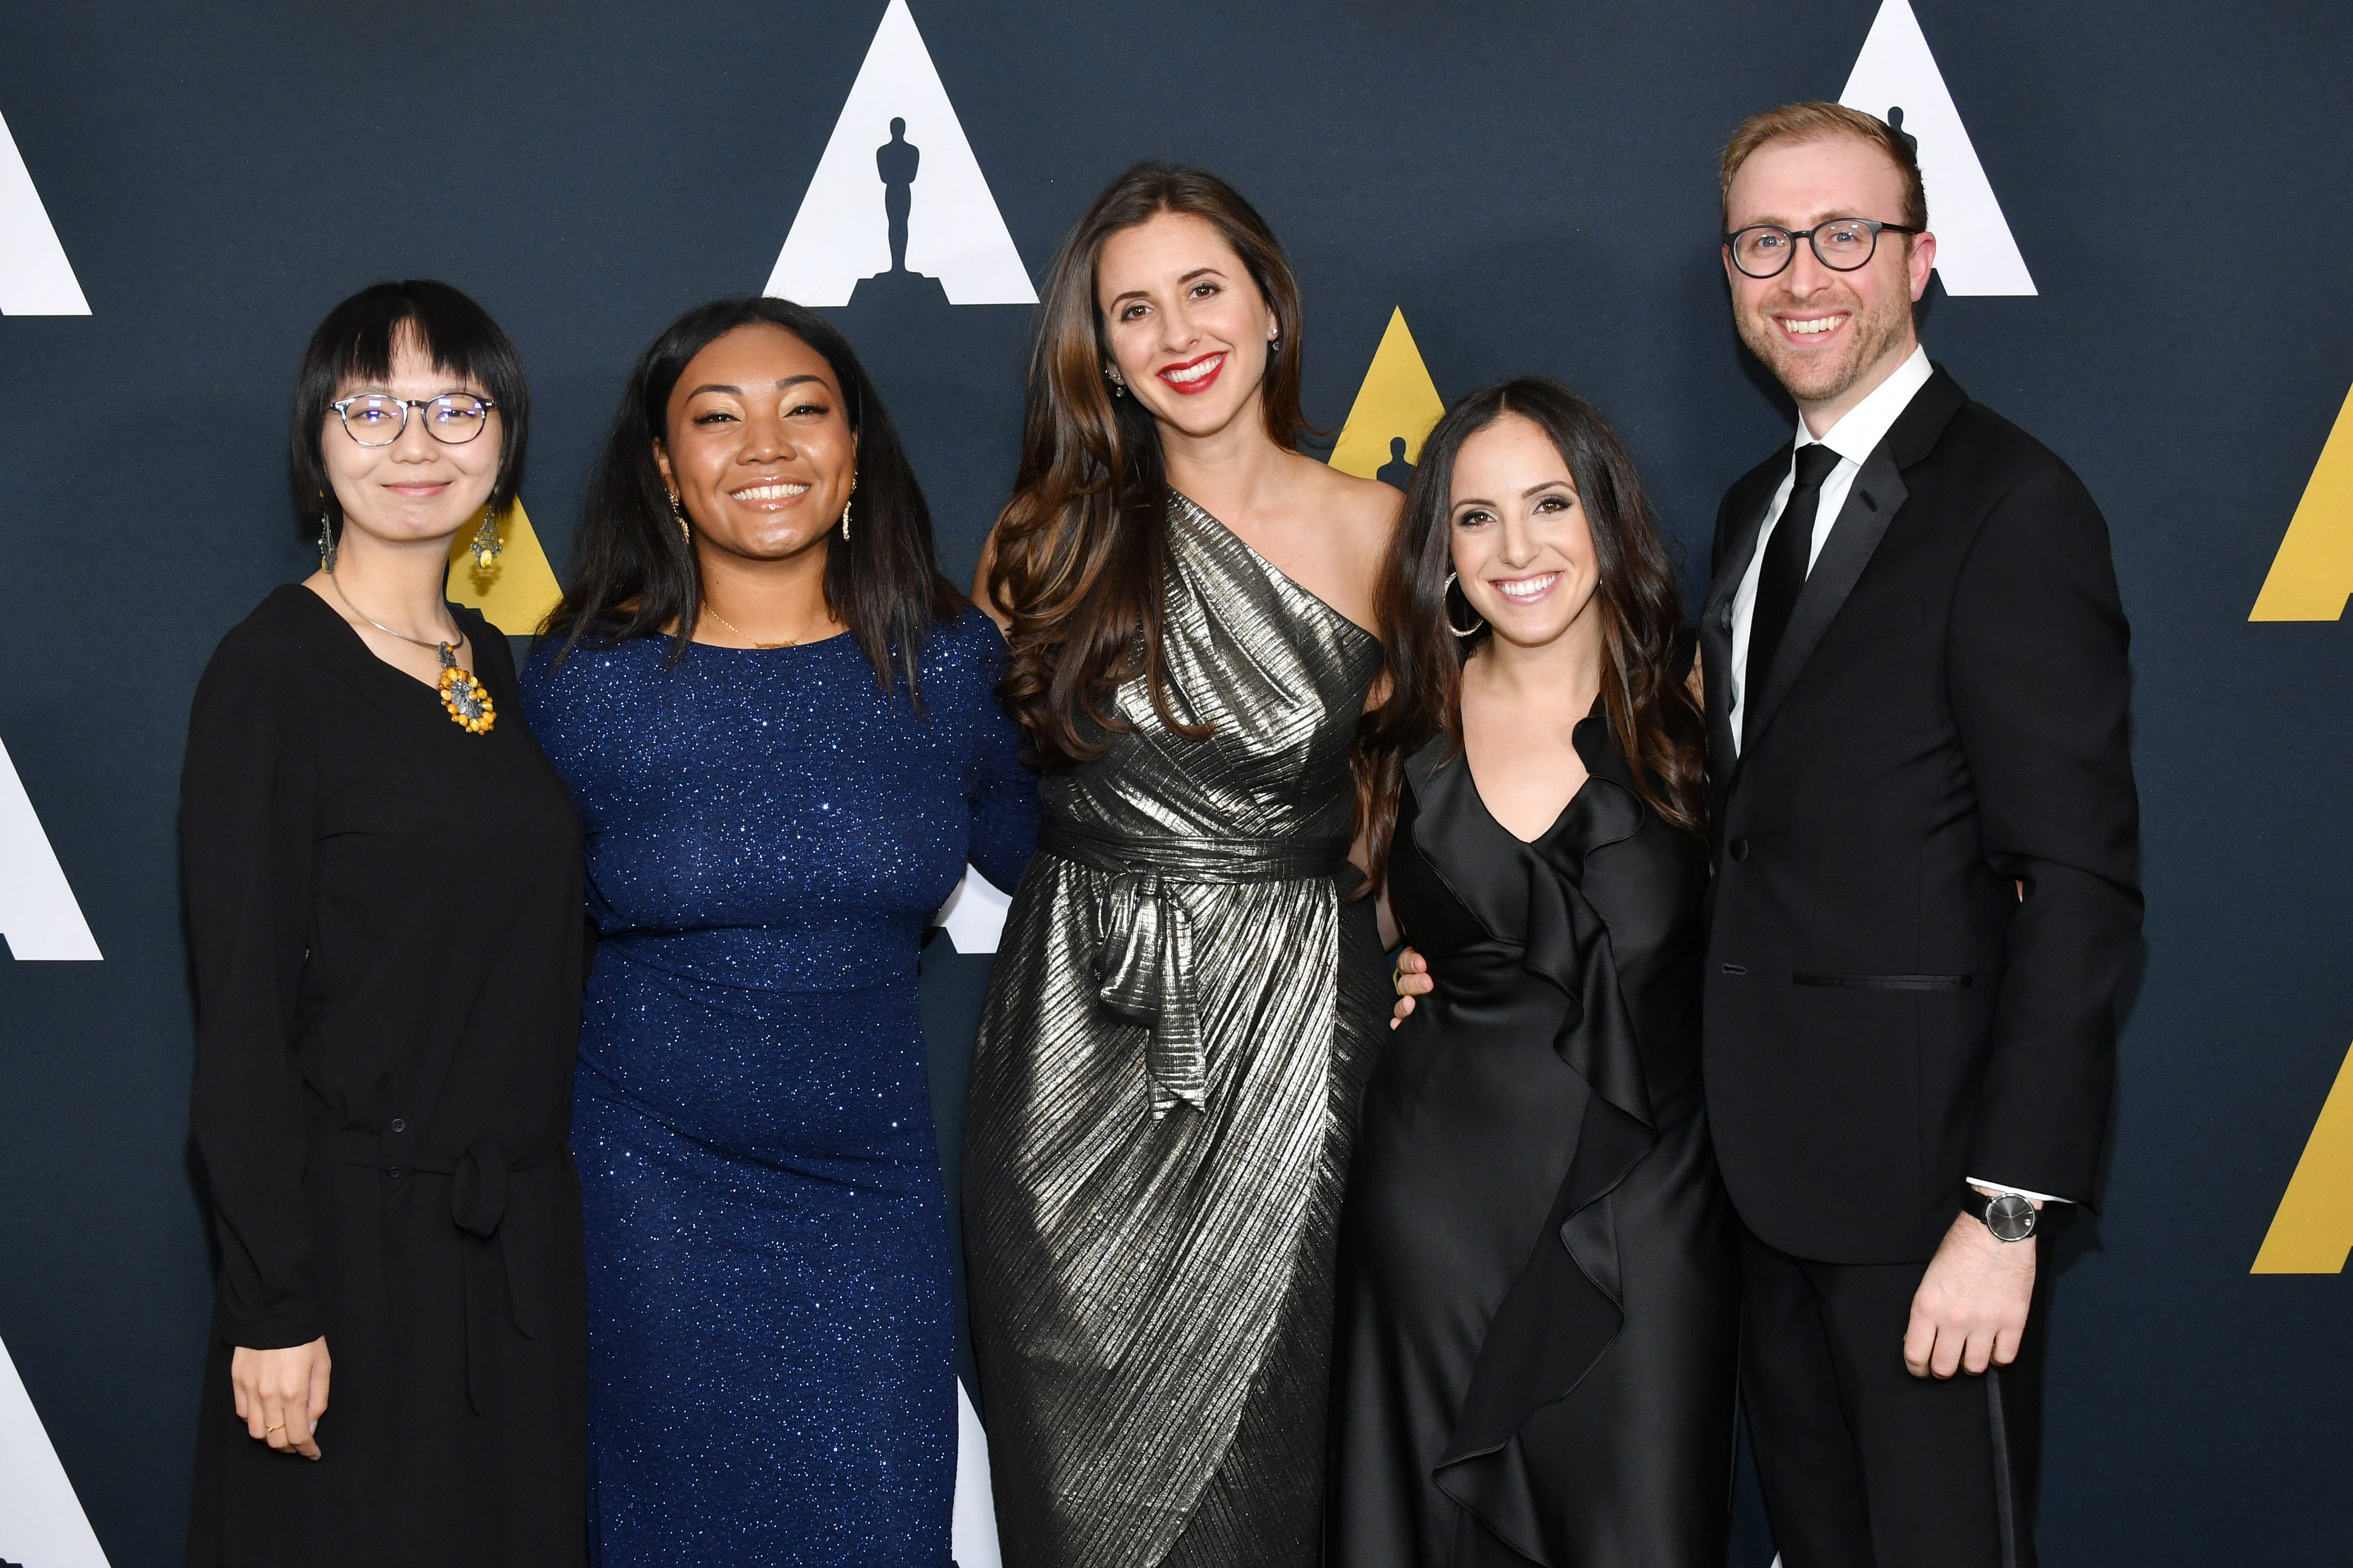 16 young filmmakers win Student Academy Awards (just like Spike Lee)